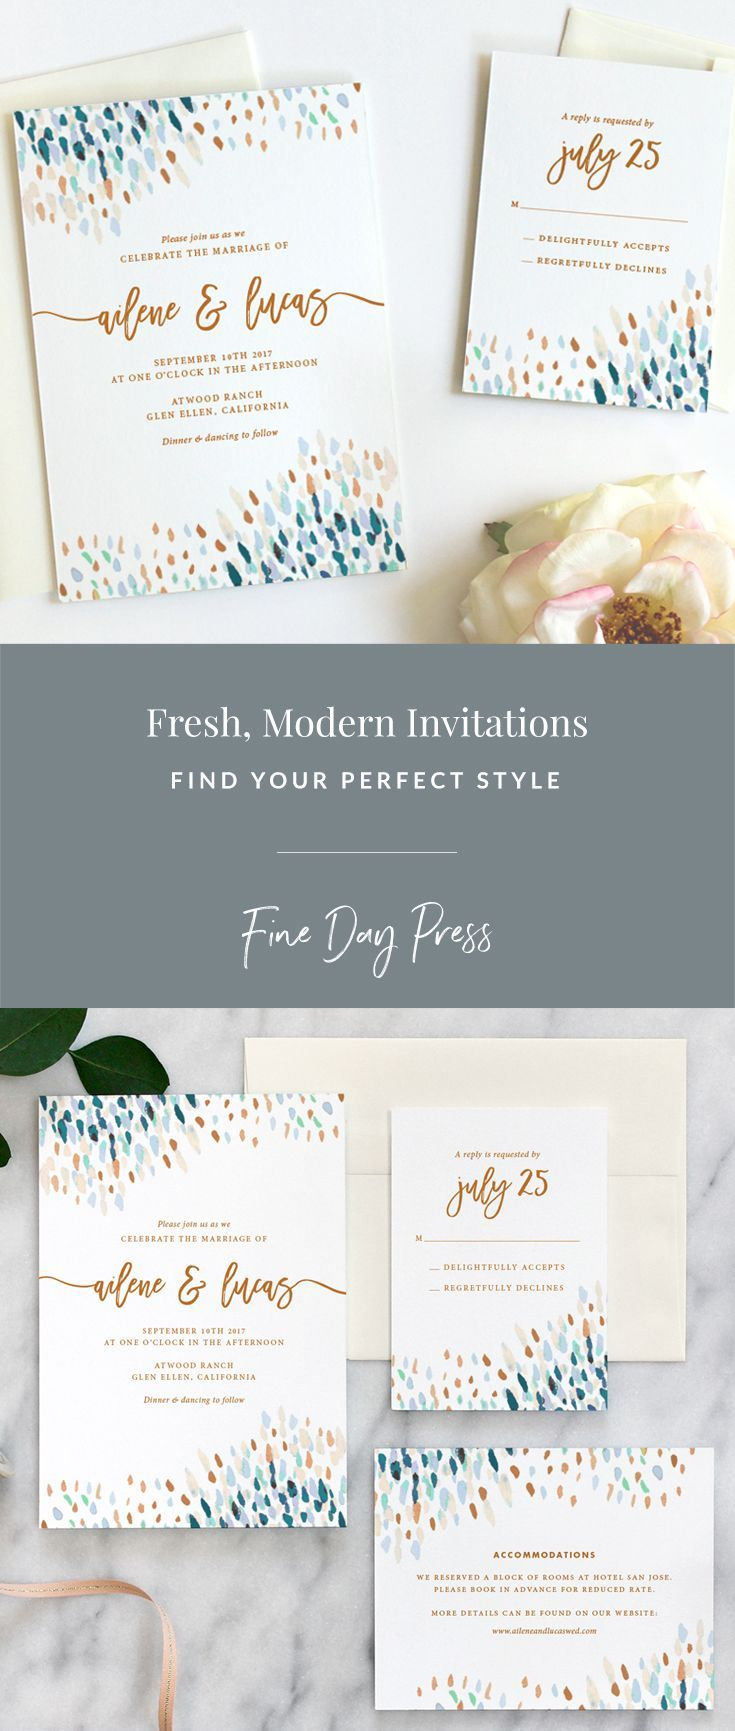 wedding invitations peacock theme%0A Abstract Dot Wedding Invitations  Peacock